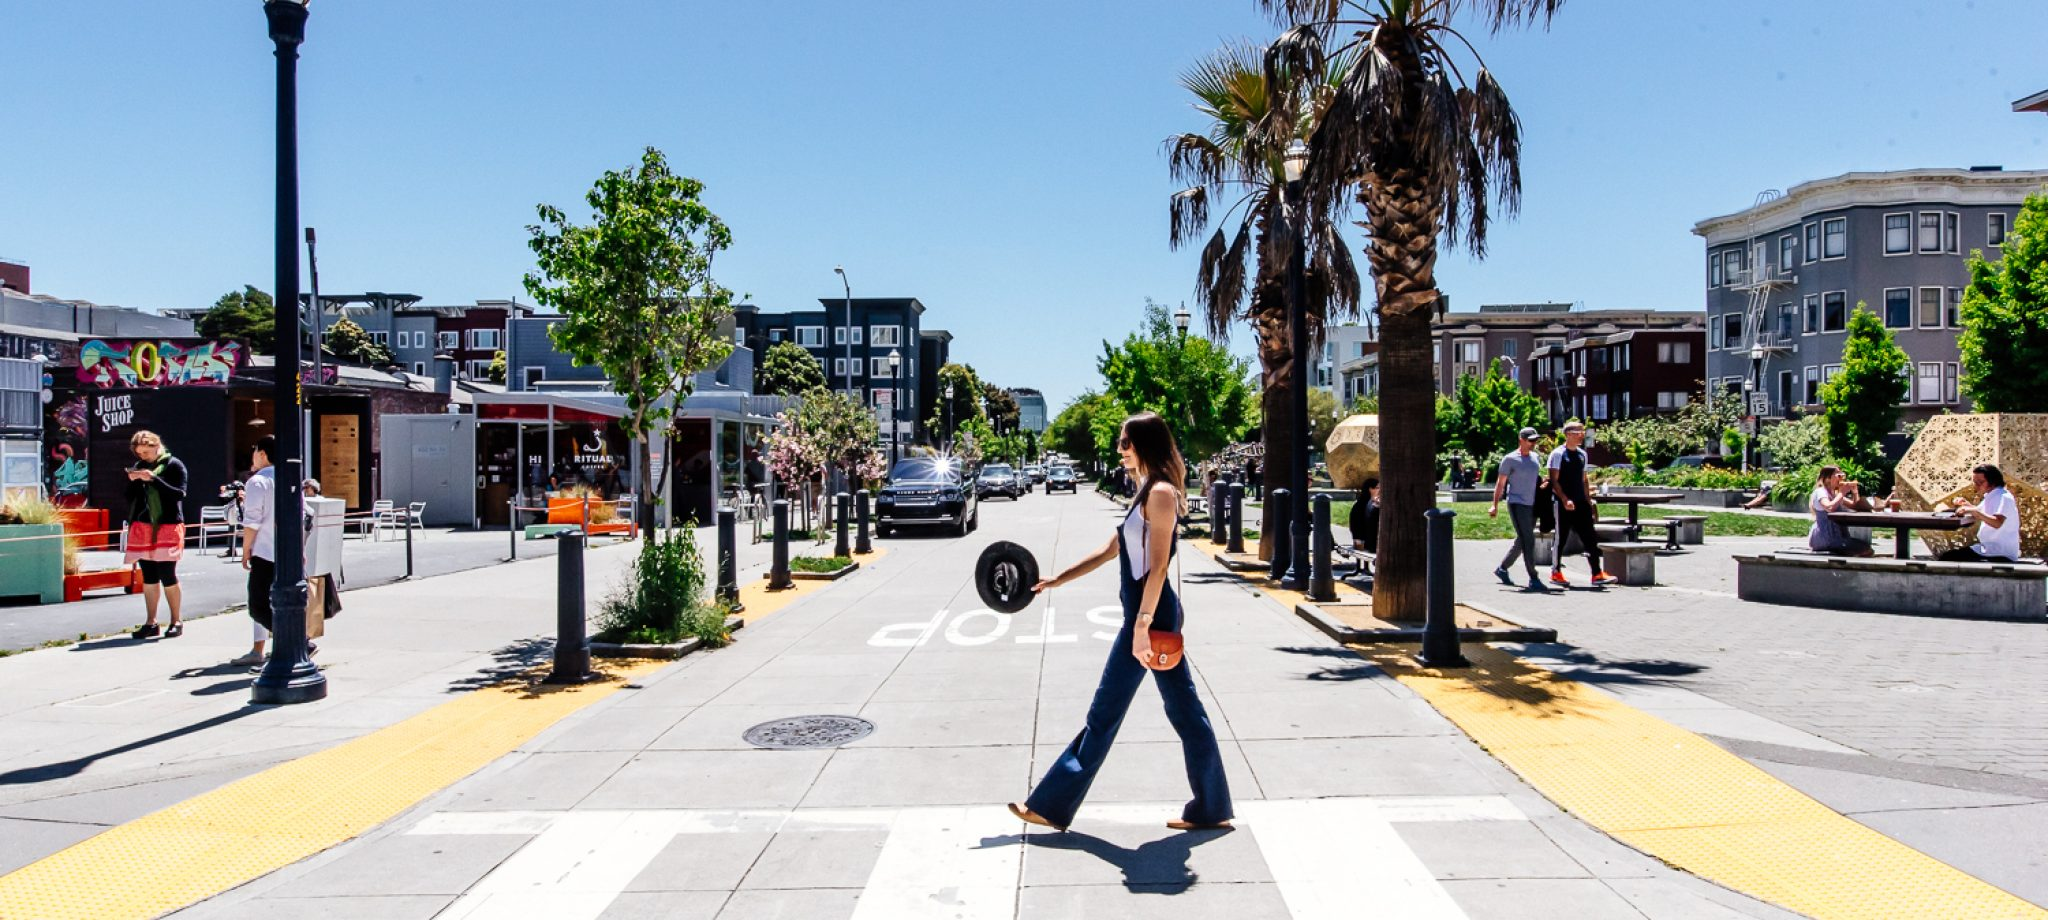 Strolling Hayes Valley with Natalia Borecka, Founder of Lone Wolf Mag